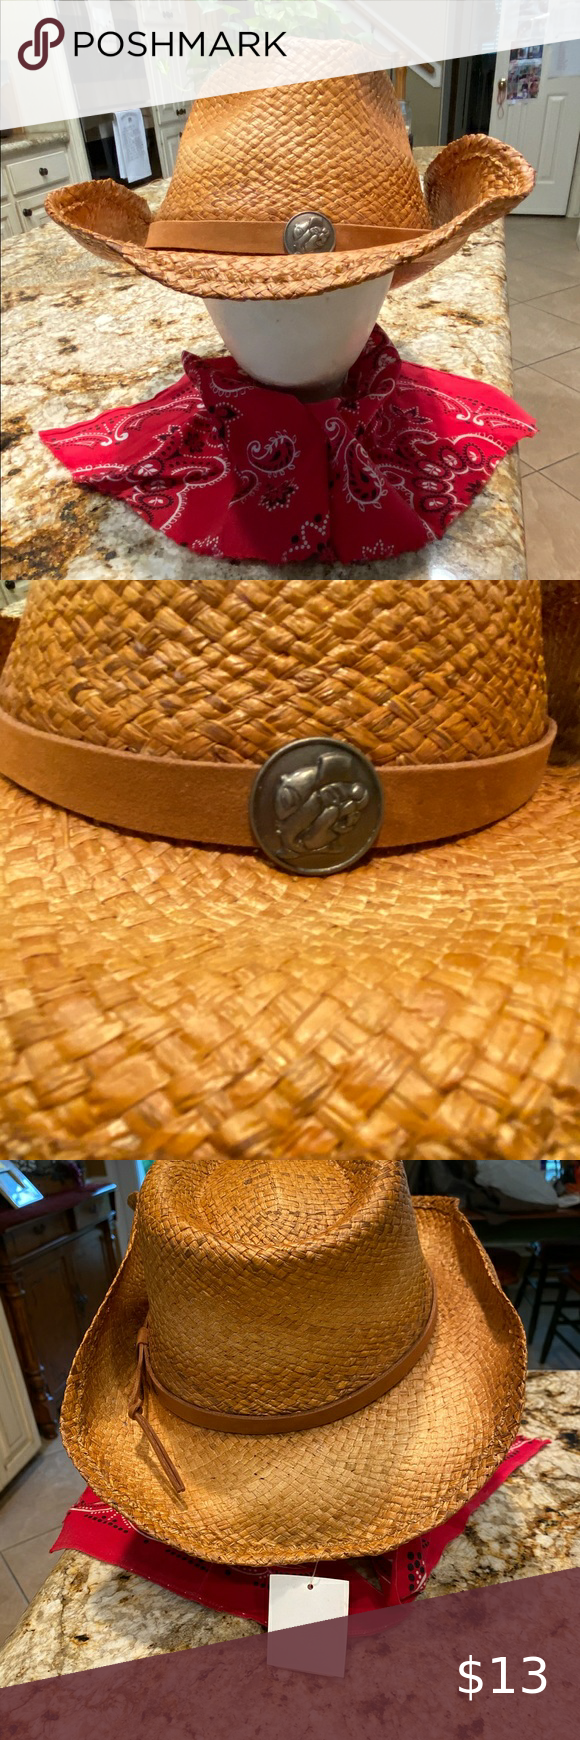 Buc Ee S Straw Hat Unisex L Xl New With Tags Straw Hat New With Tags Hats